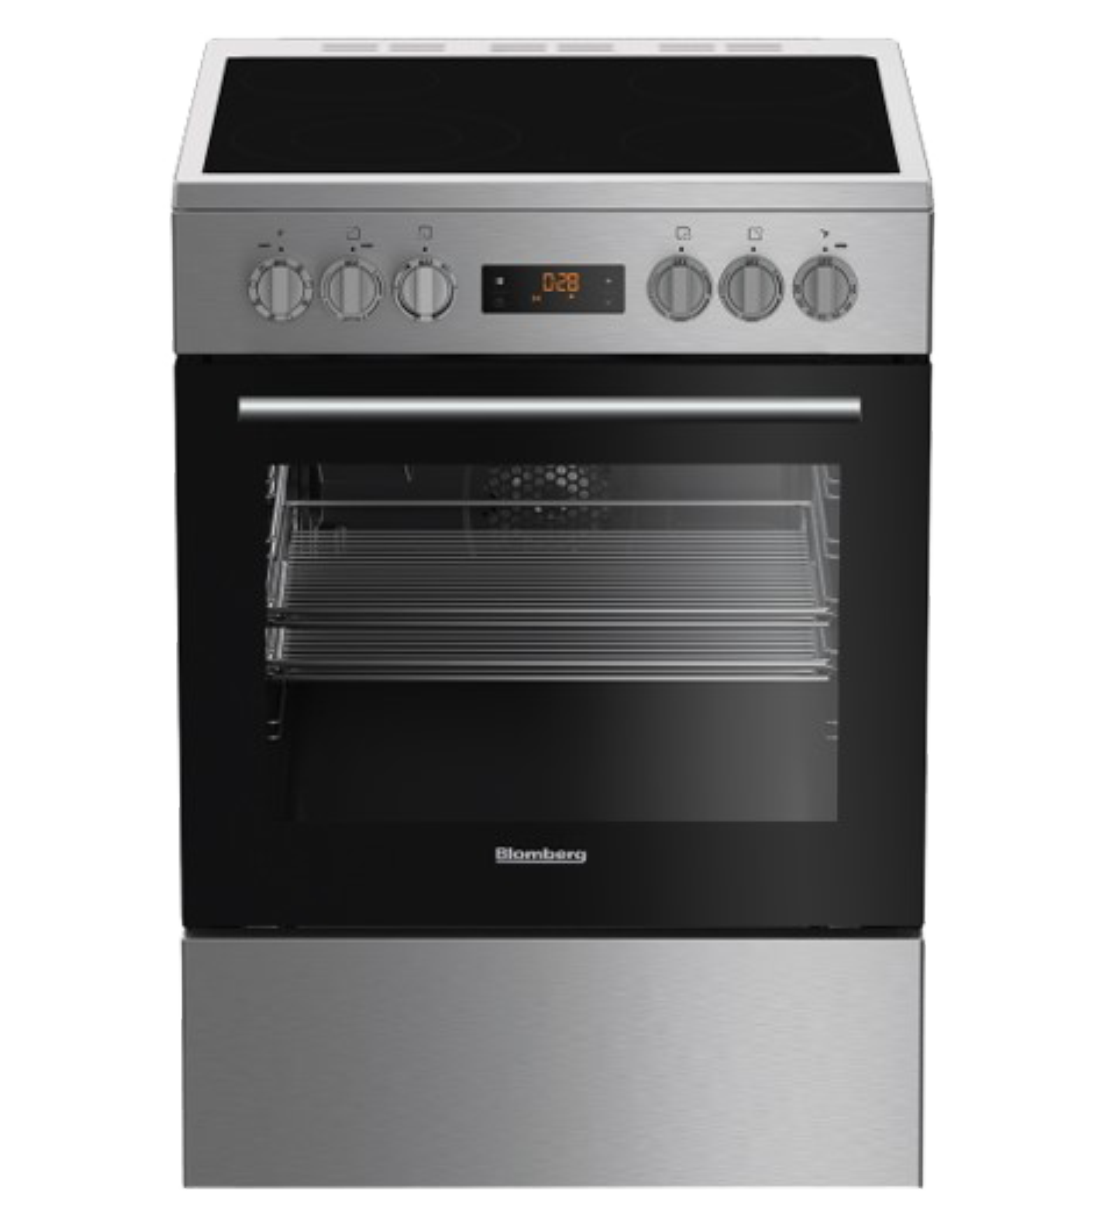 Blomberg Range 24inch in Stainless Steel color showcased by Corbeil Electro Store